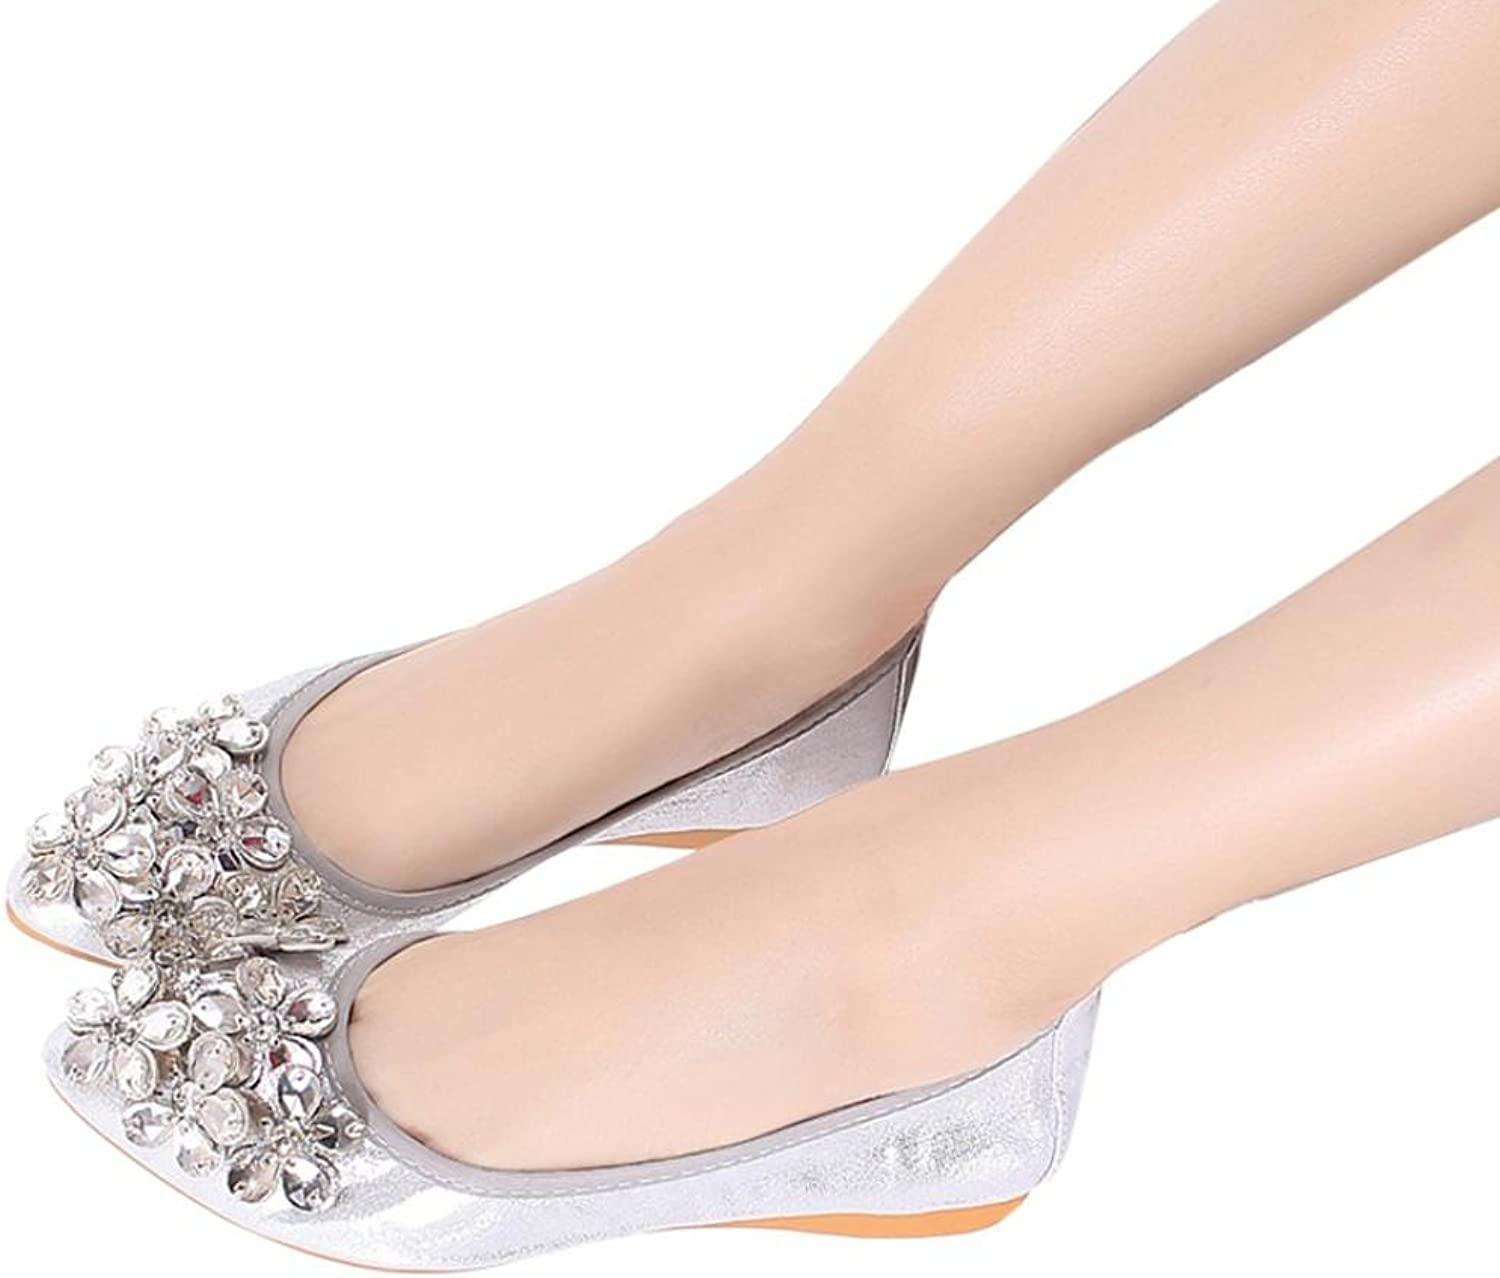 Fheaven (TM) Women Ballet shoes Leisure Rhinestone Loafers Flats shoes Princess Shiny shoes Slip On